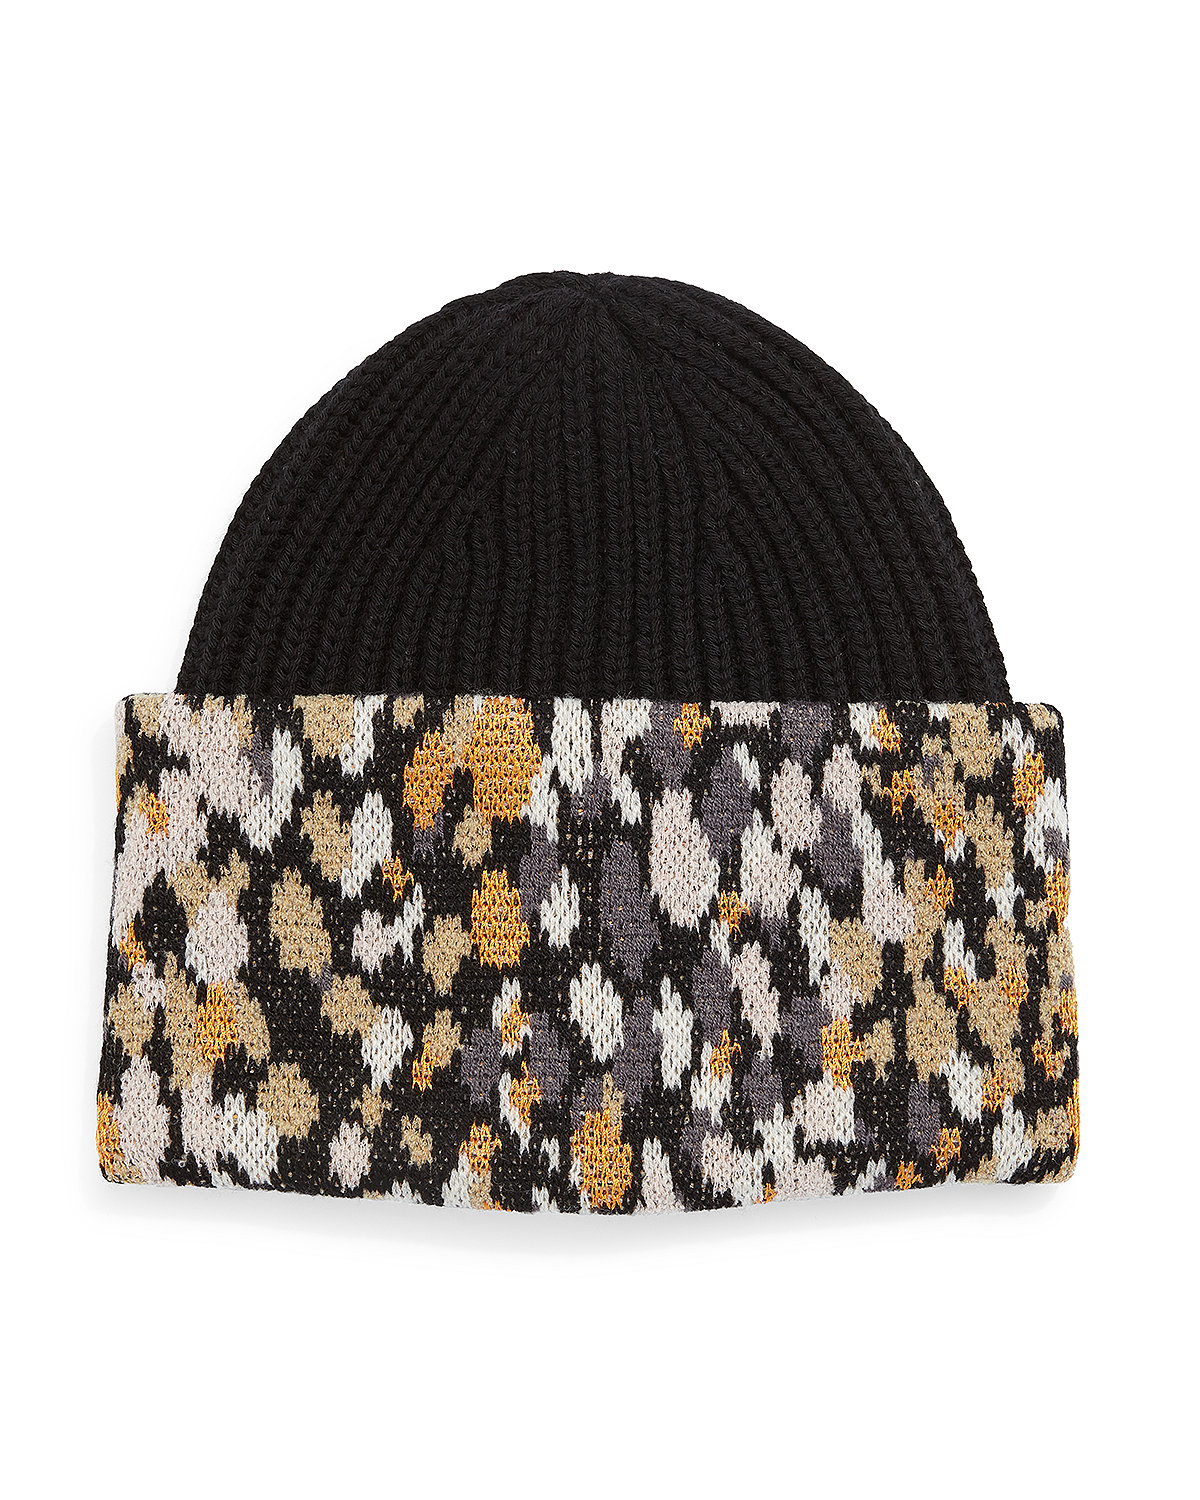 Knit Speckled-Cuff Hat